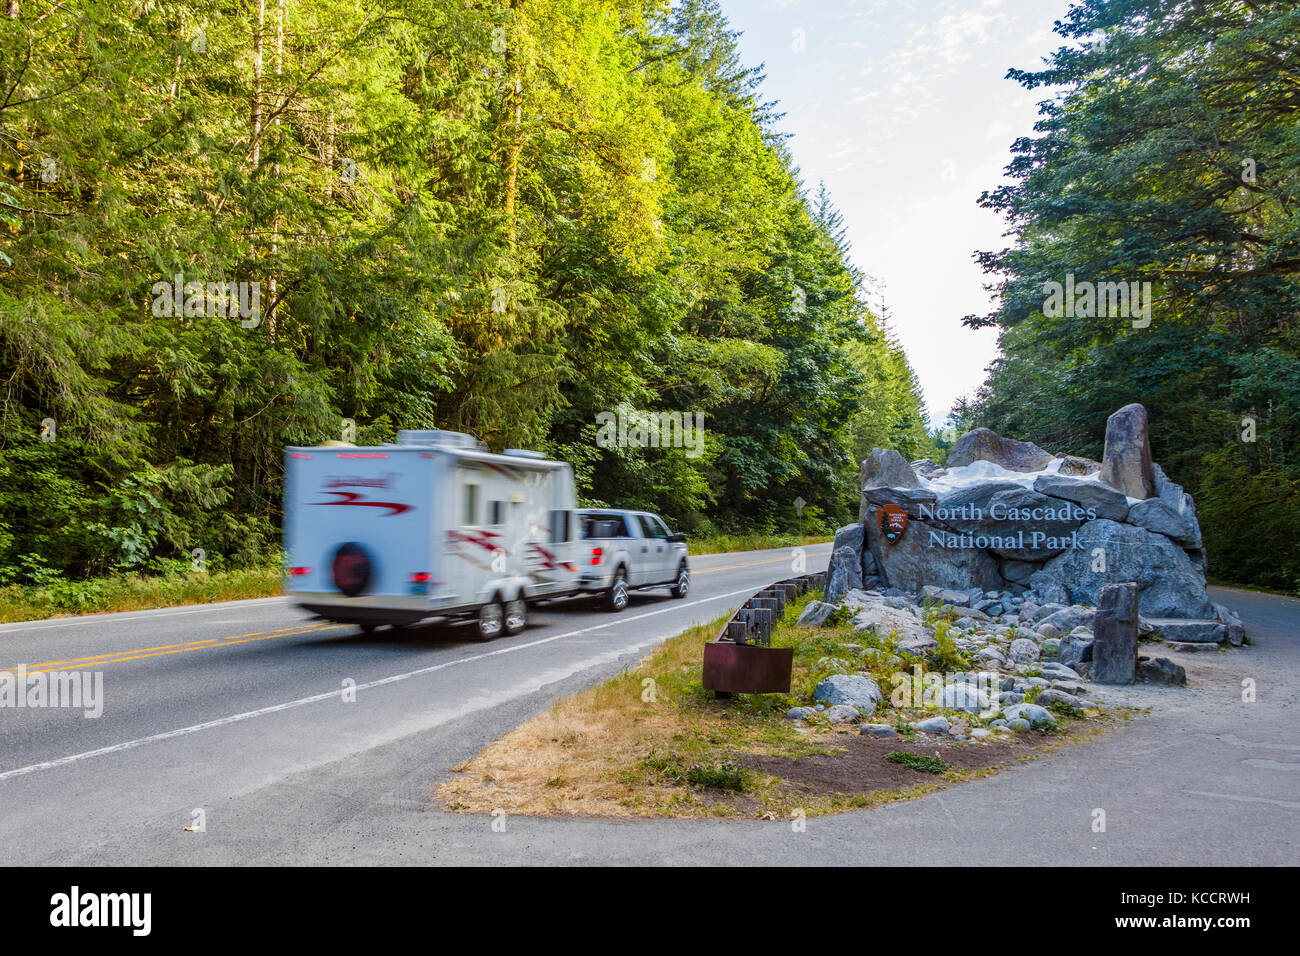 Camping trailer at entrance sign to North Cascades National Park in Northwest Washington State Stock Photo